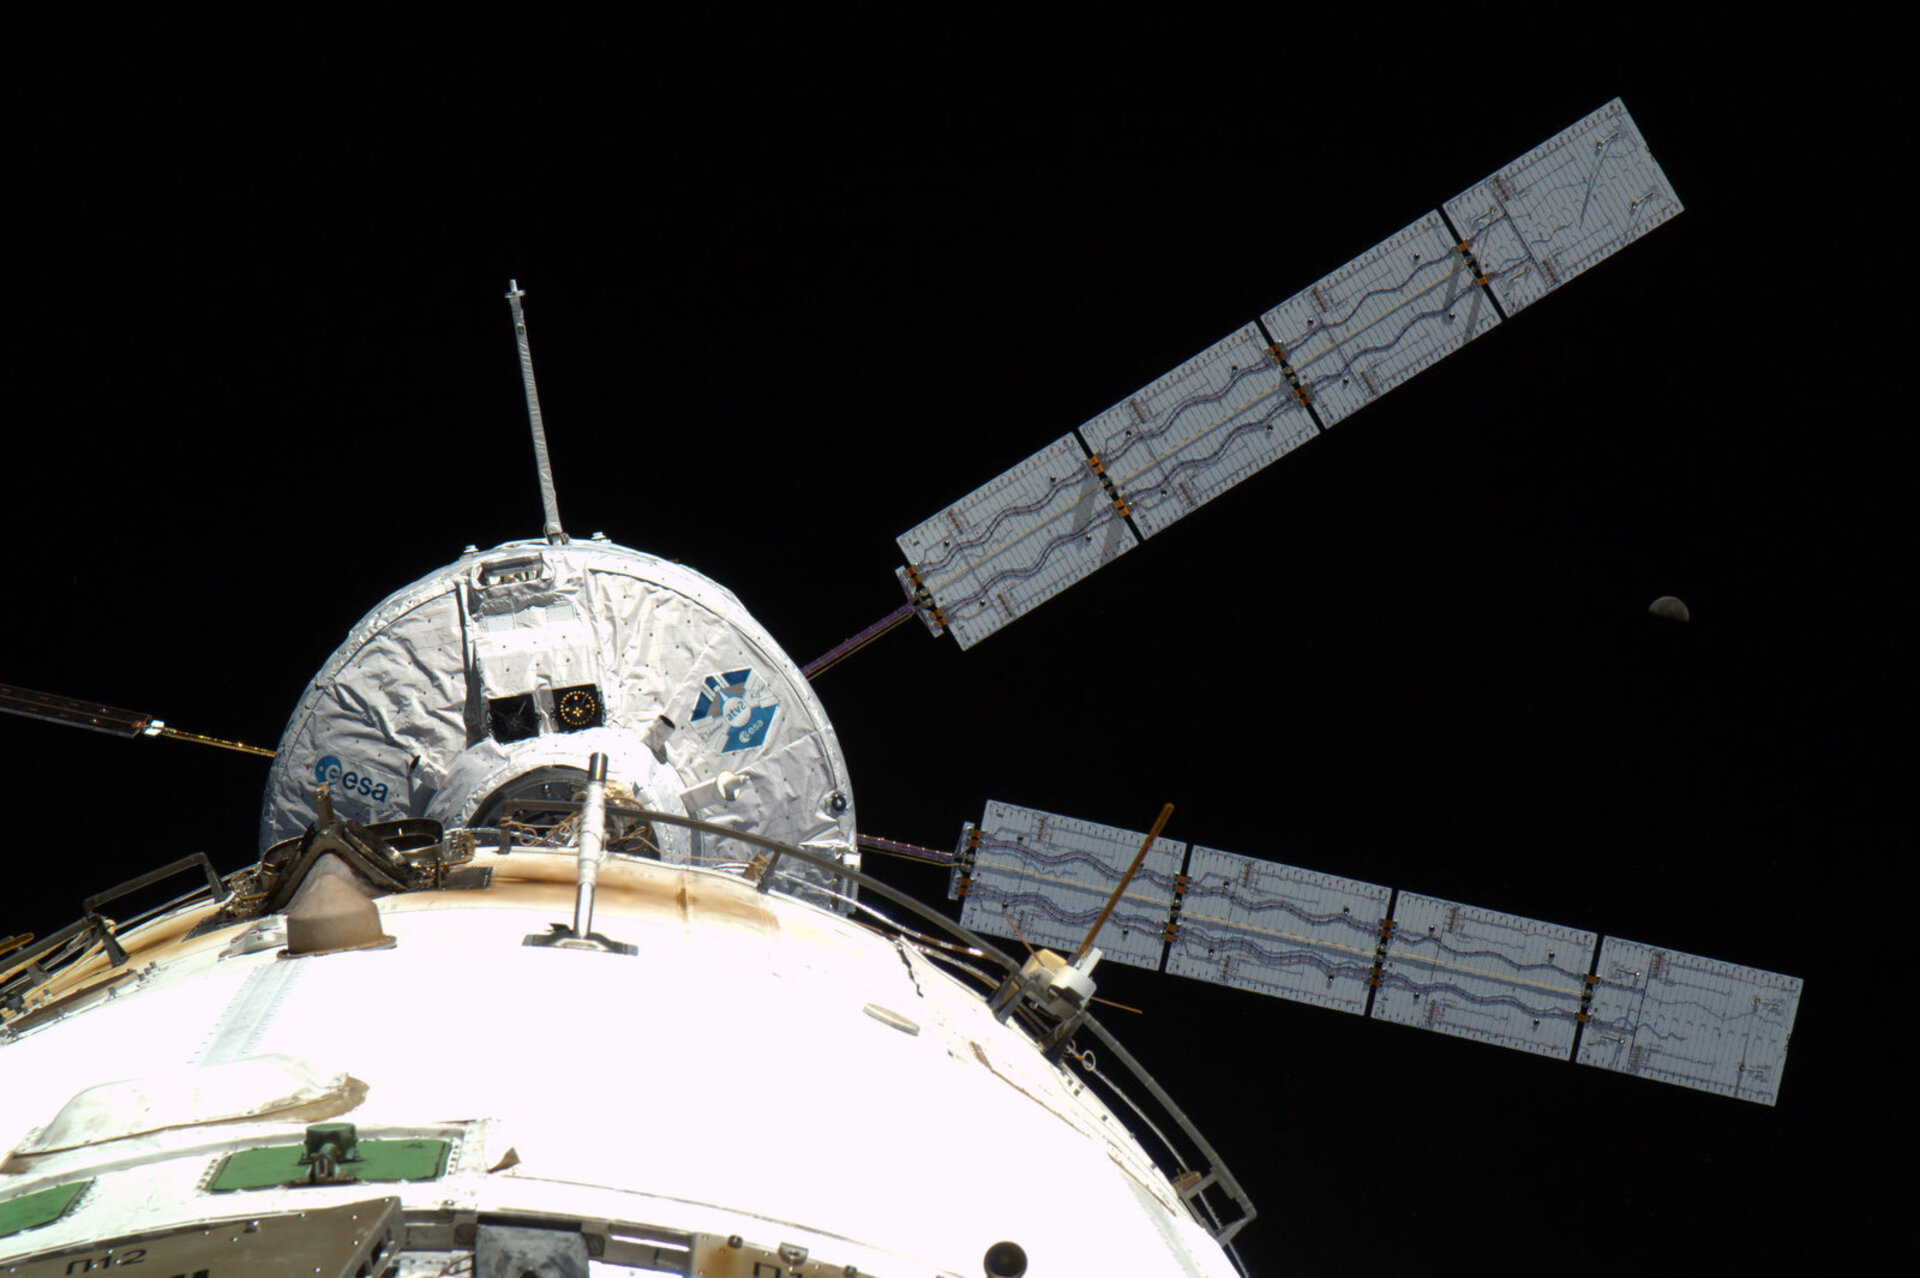 ATV-2 docking with ISS on 24 February 2011